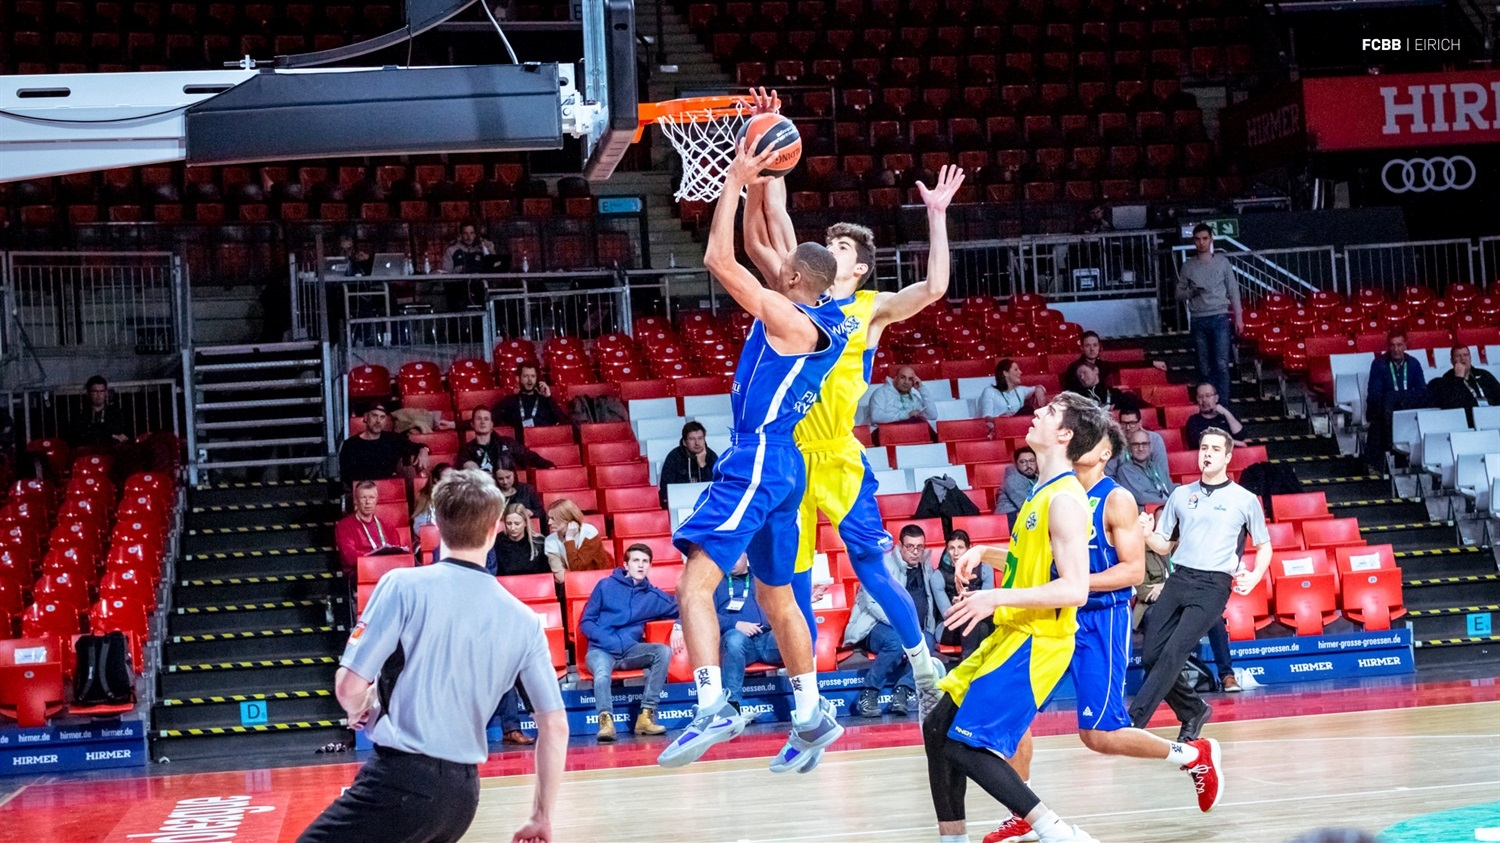 Len Schoormann - U18 Fraport Skyliners Frankfurt - ANGT Munich 2019 (photo  FCBB - Eirich) JT18